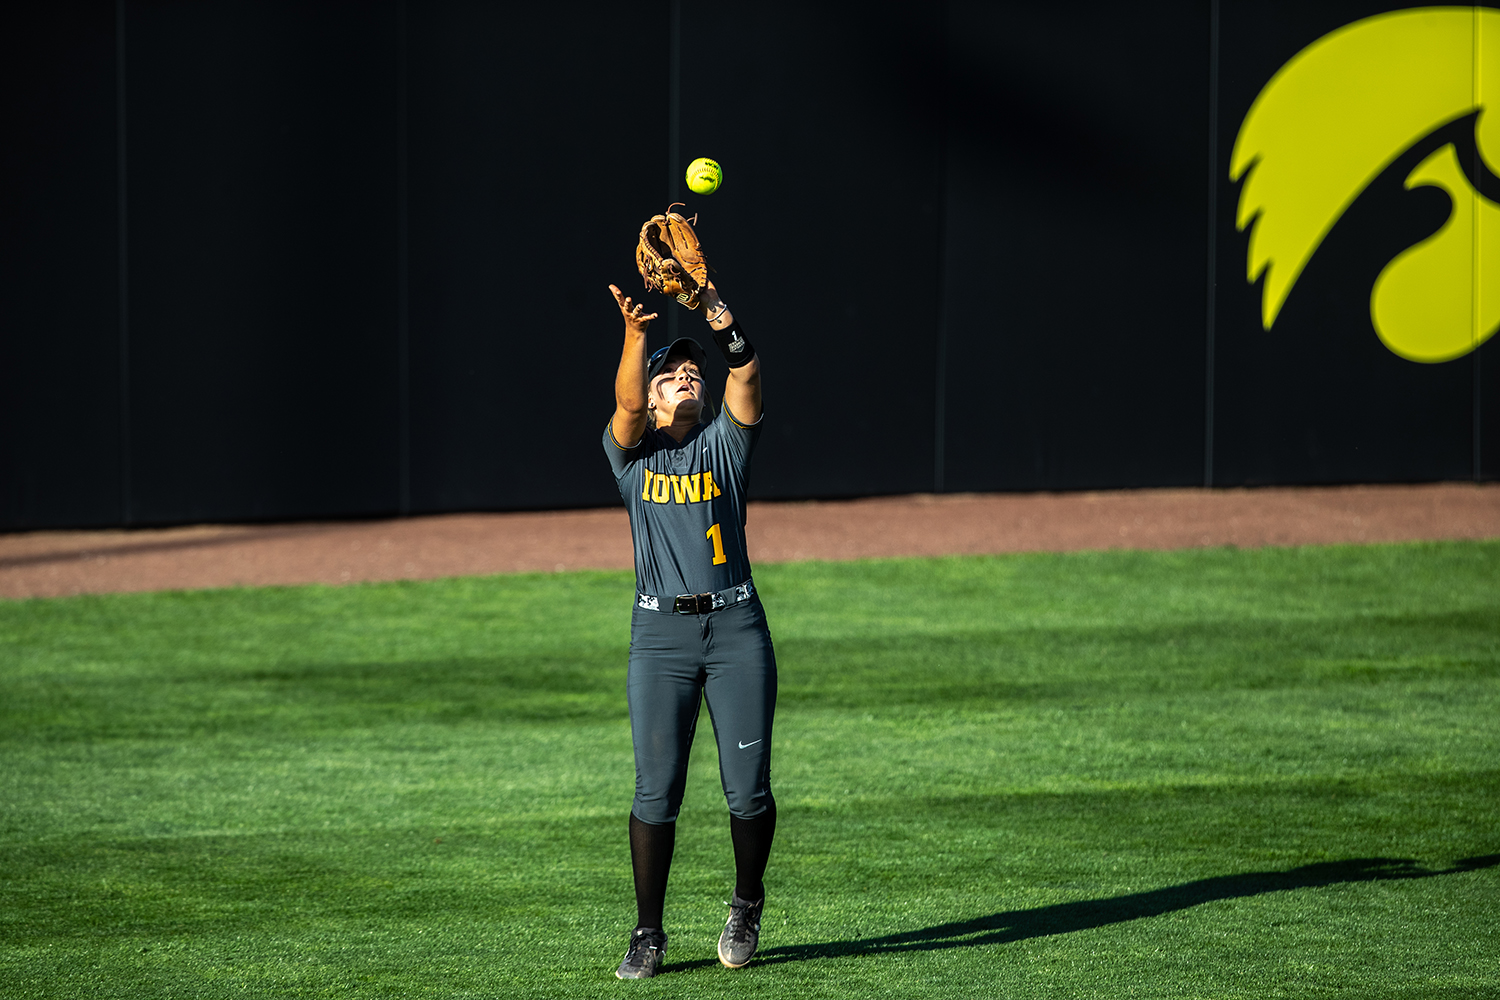 Iowa+infielder+Cameron+Cecilname+catches+a+ball+in+the+outfield+during+the+game+against+Nebraska+at+the+Bob+Pearl+Softball+Field+on+Wednesday%2C+April+24%2C+2019.+The+Hawkeyes+were+defeated+7-5+by+the+Huskers.